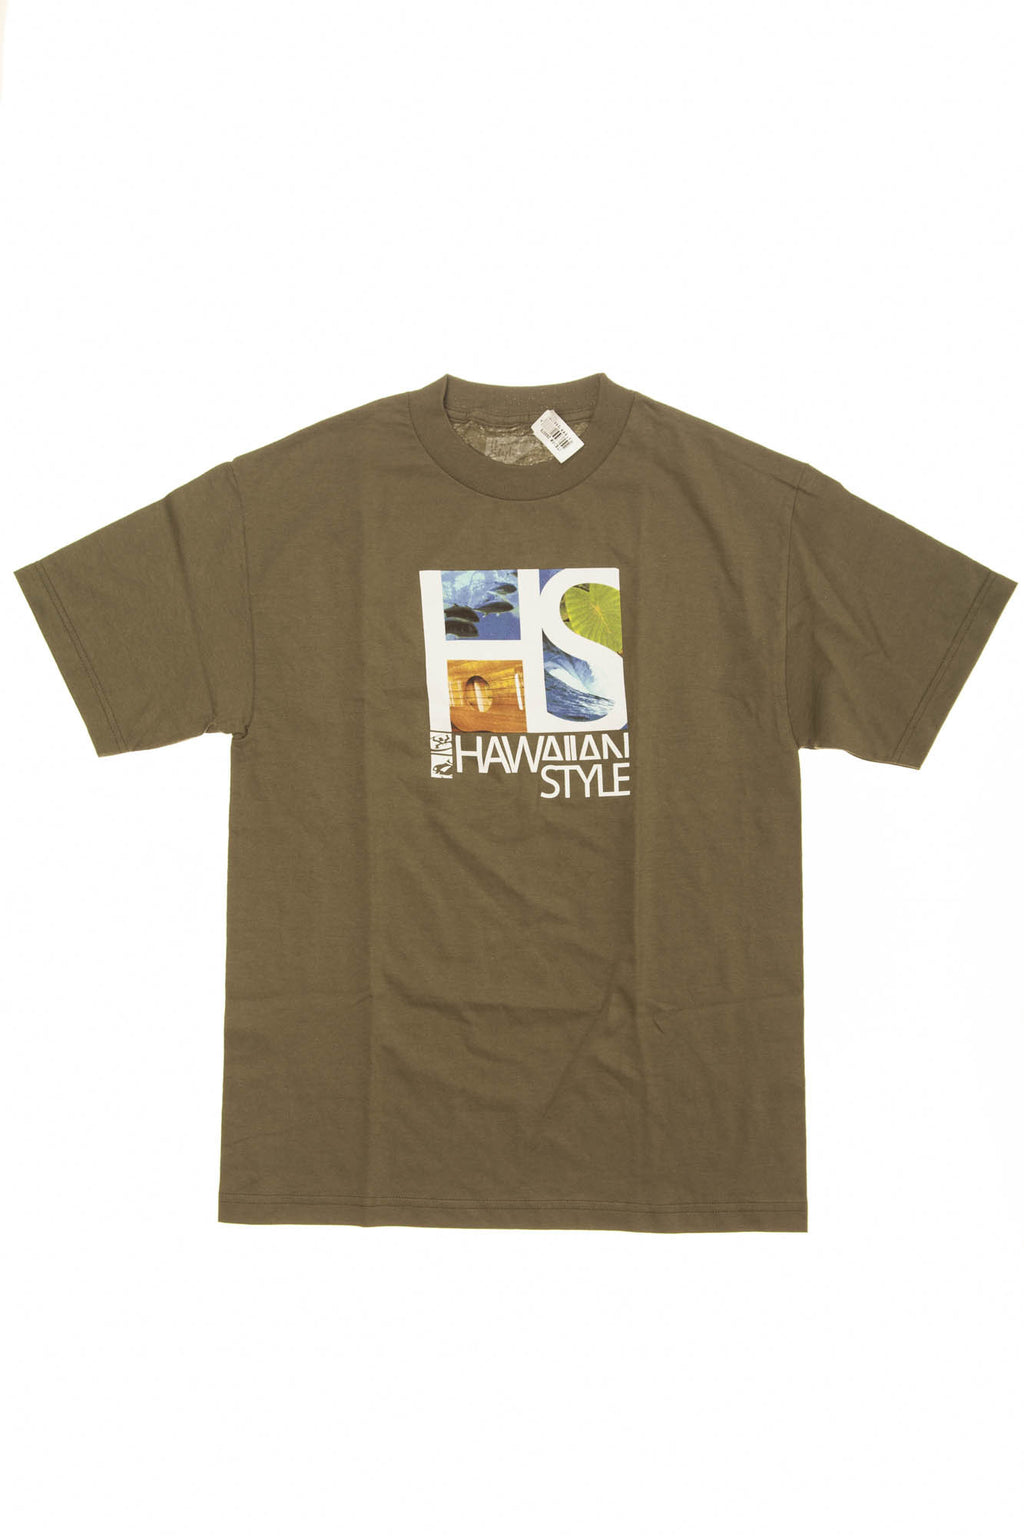 Hawaiian Style - Olive Green Short Sleeve Graphic T Shirt